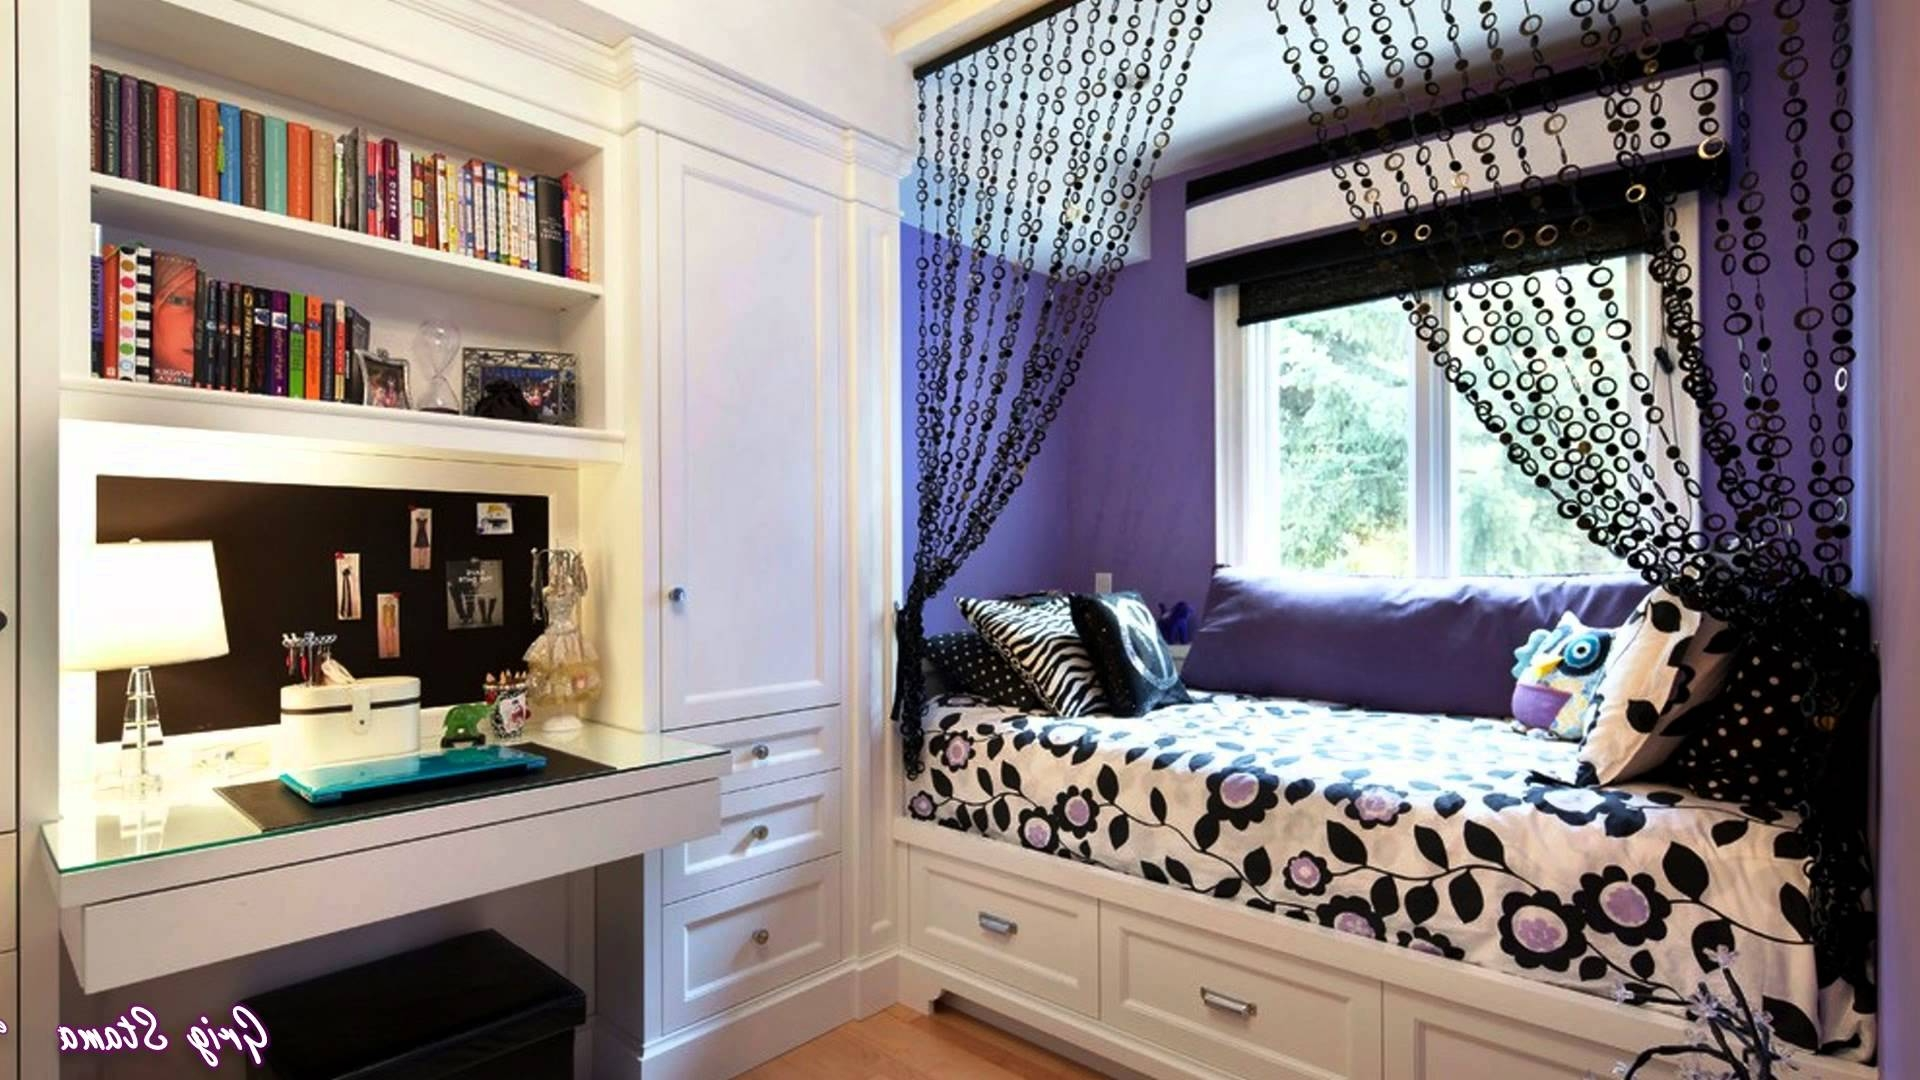 diy room decorating ideas for teenage girls youtube diy teenage with diy room decorating ideas for bedroom photo teenage bedroom ideas